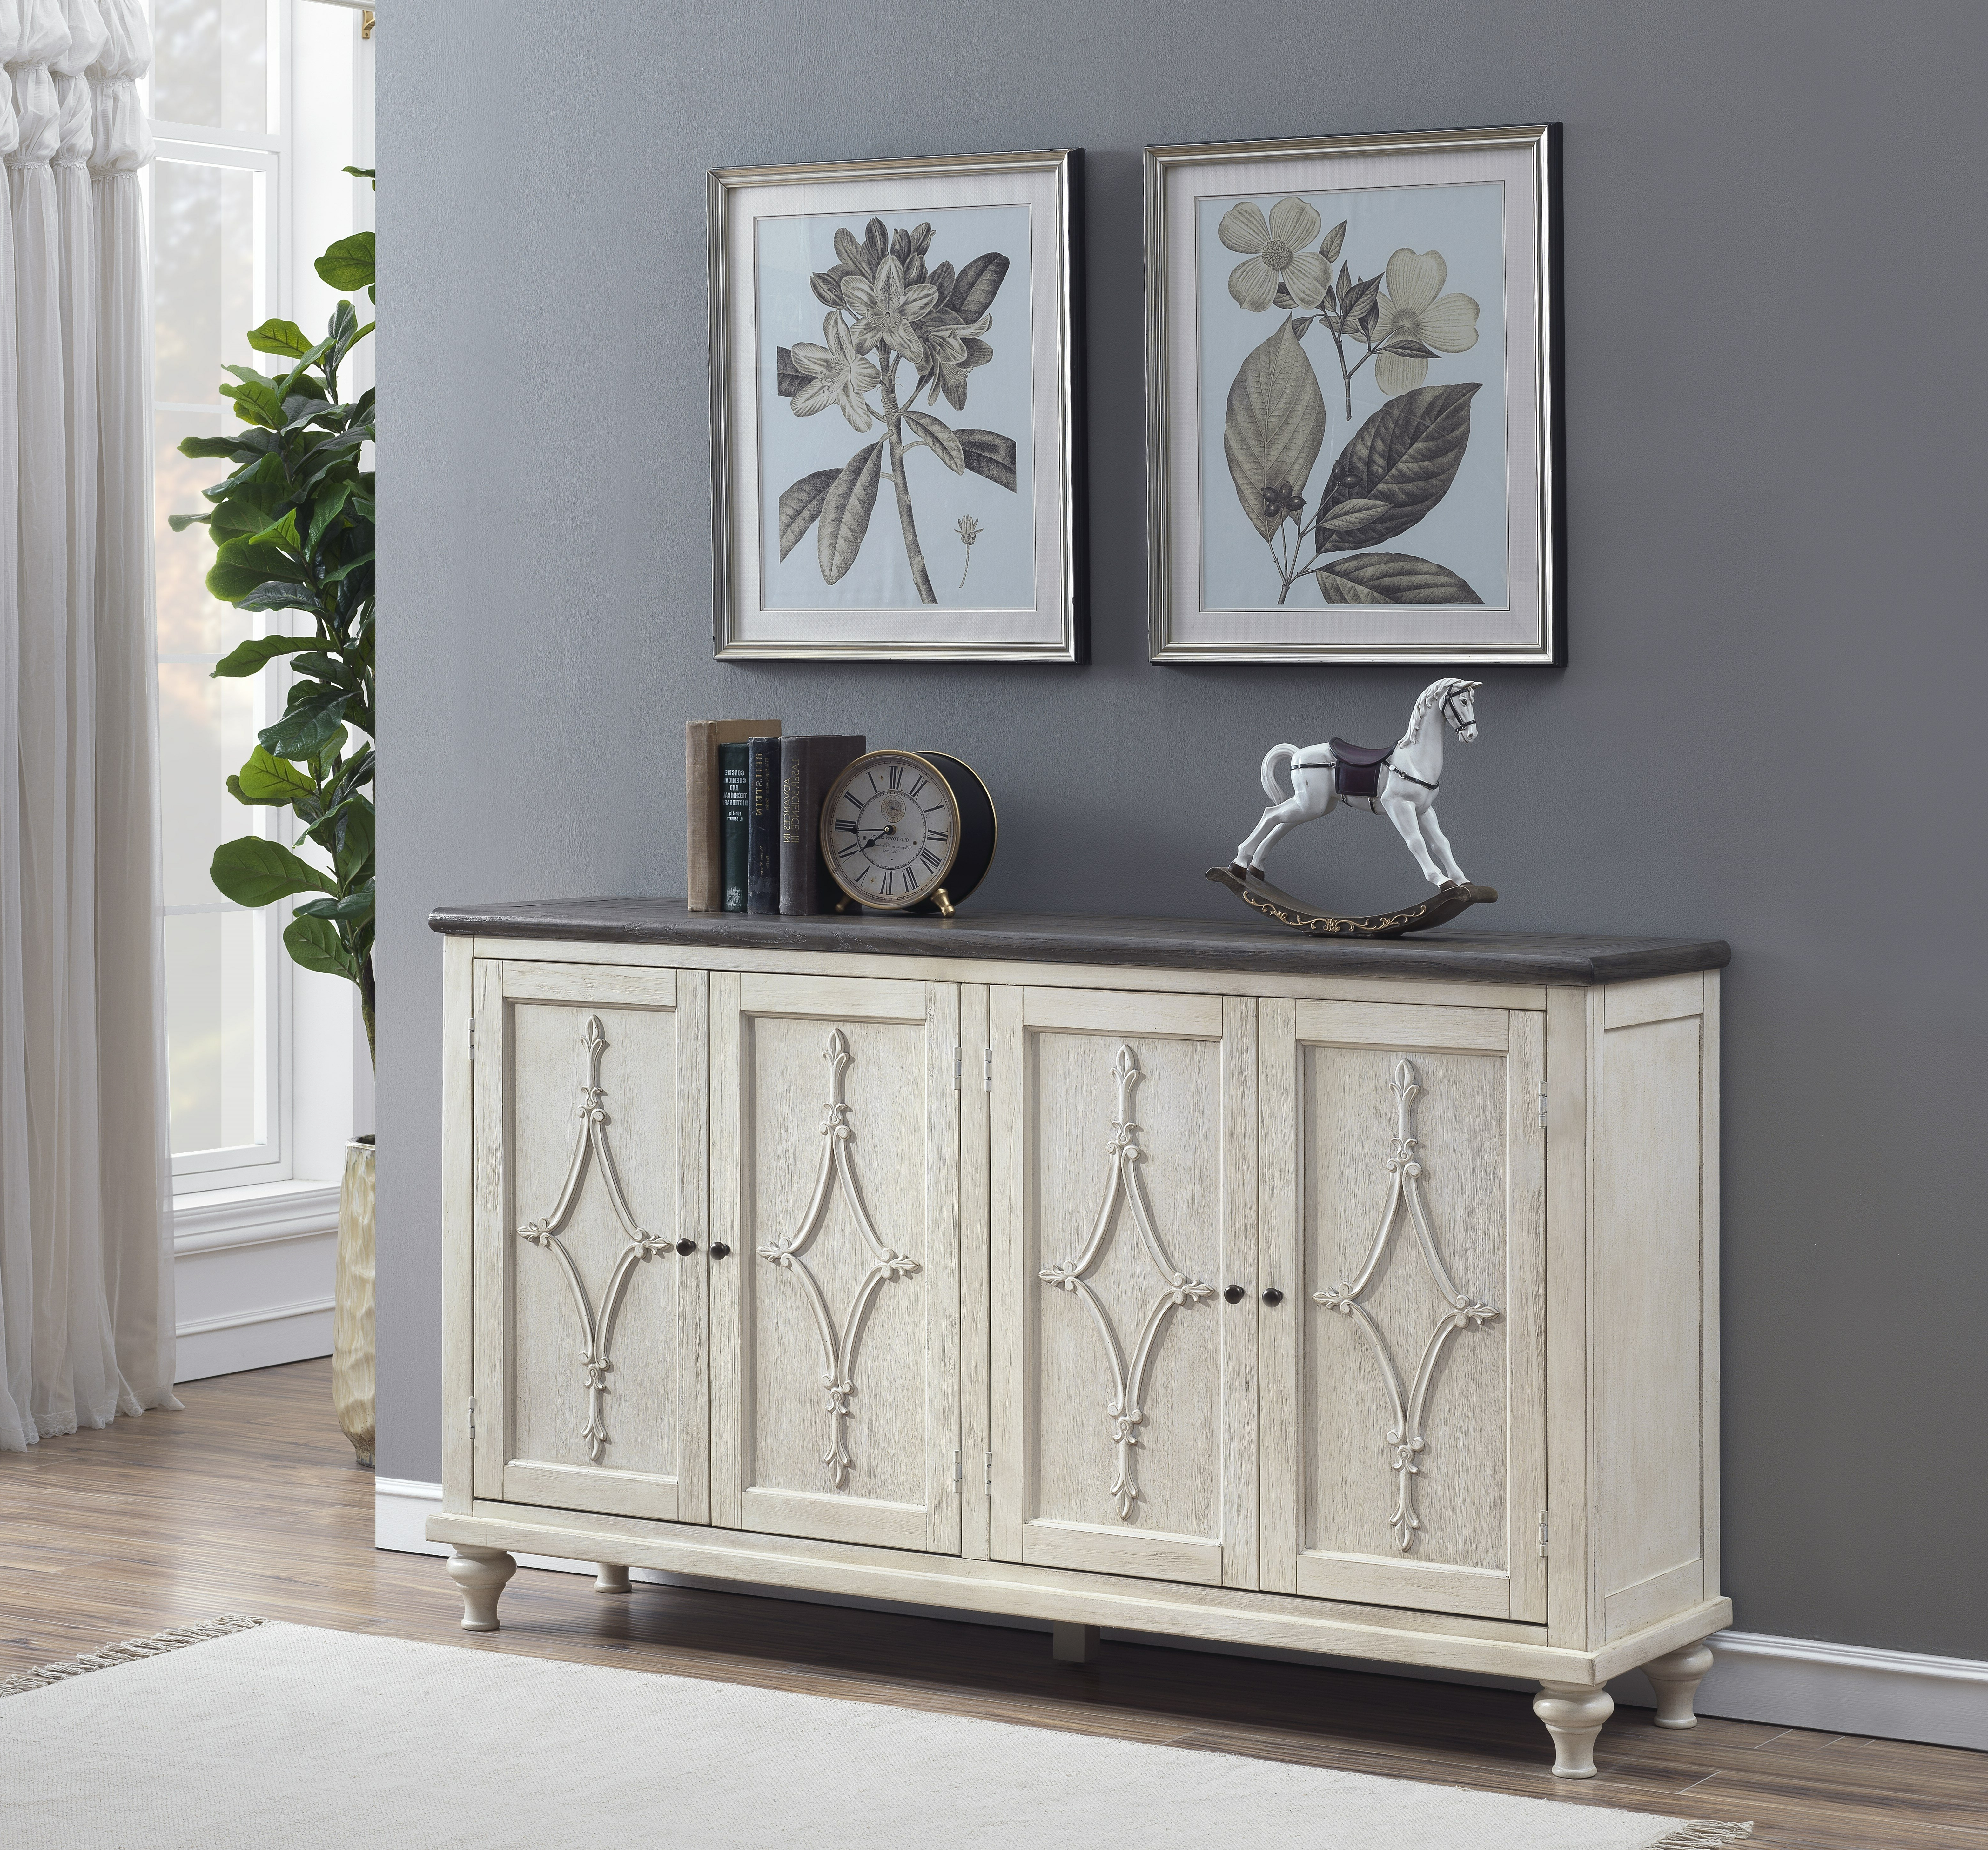 Bernard 4 Door Media Credenza For Most Popular Serafino Media Credenzas (View 3 of 20)